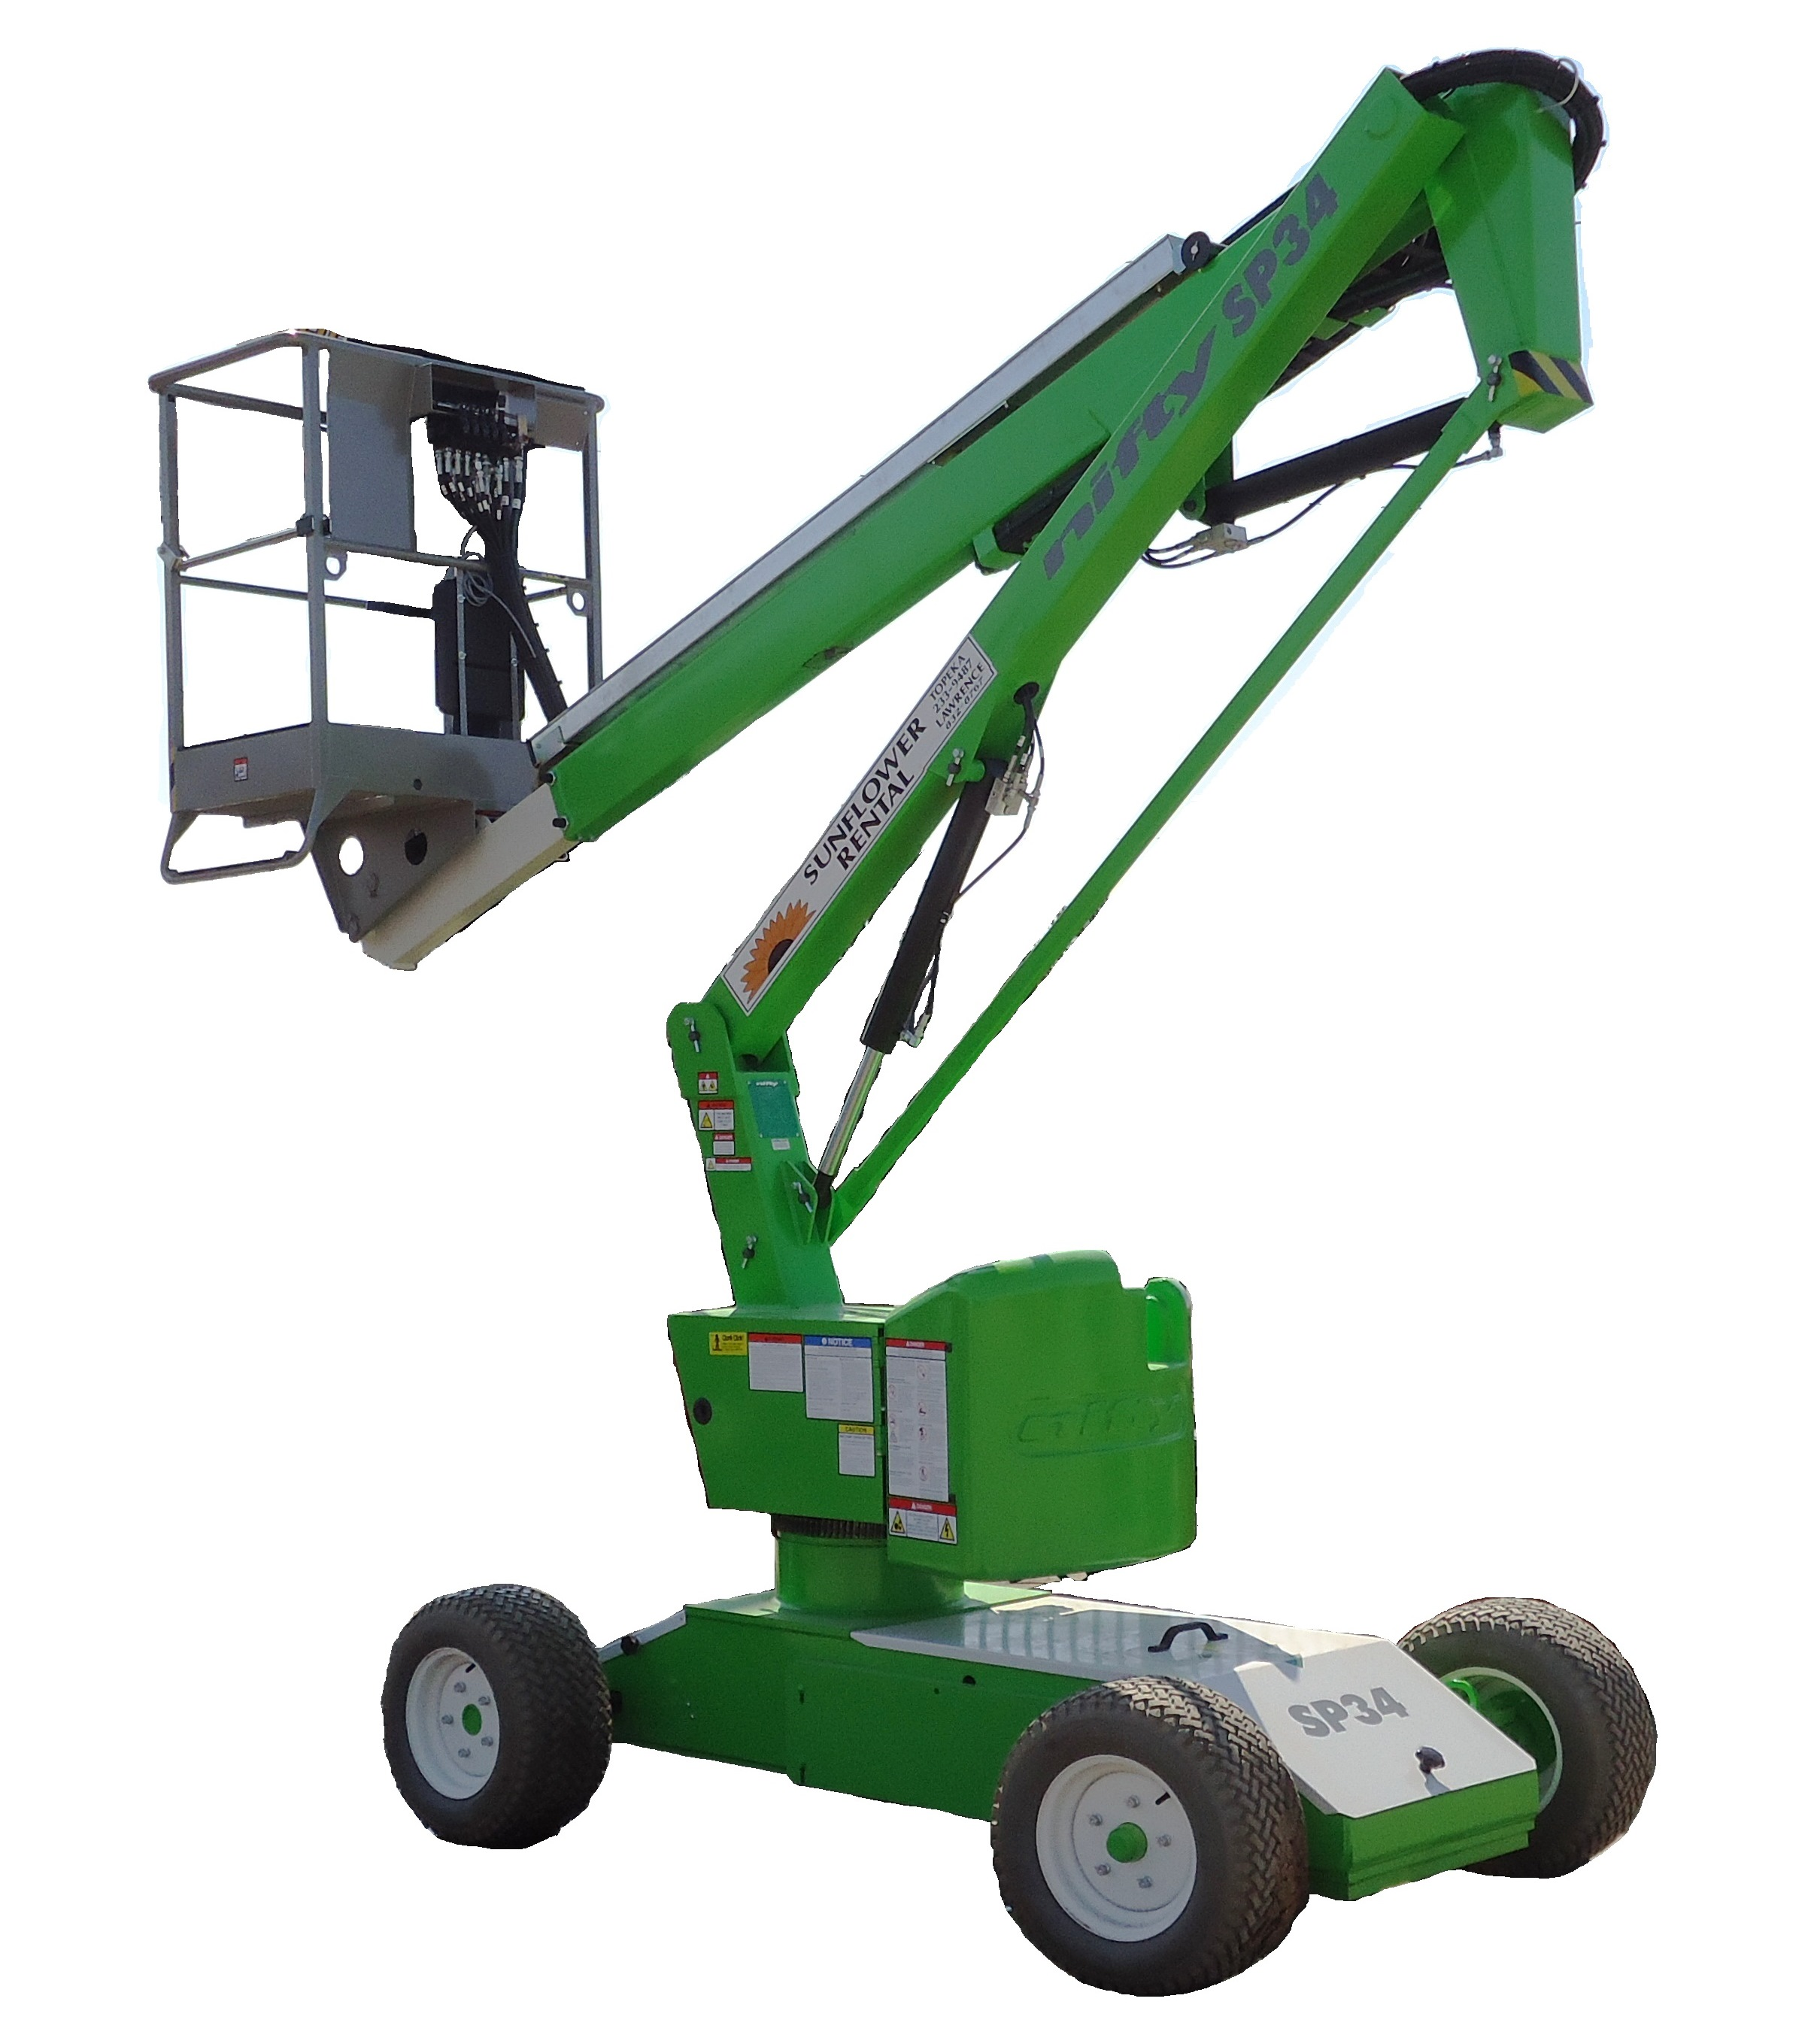 NiftyLift SP34N portable cherrypicker boomlift for rent sunflower equipment rental topeka lawrence blue springs kansas